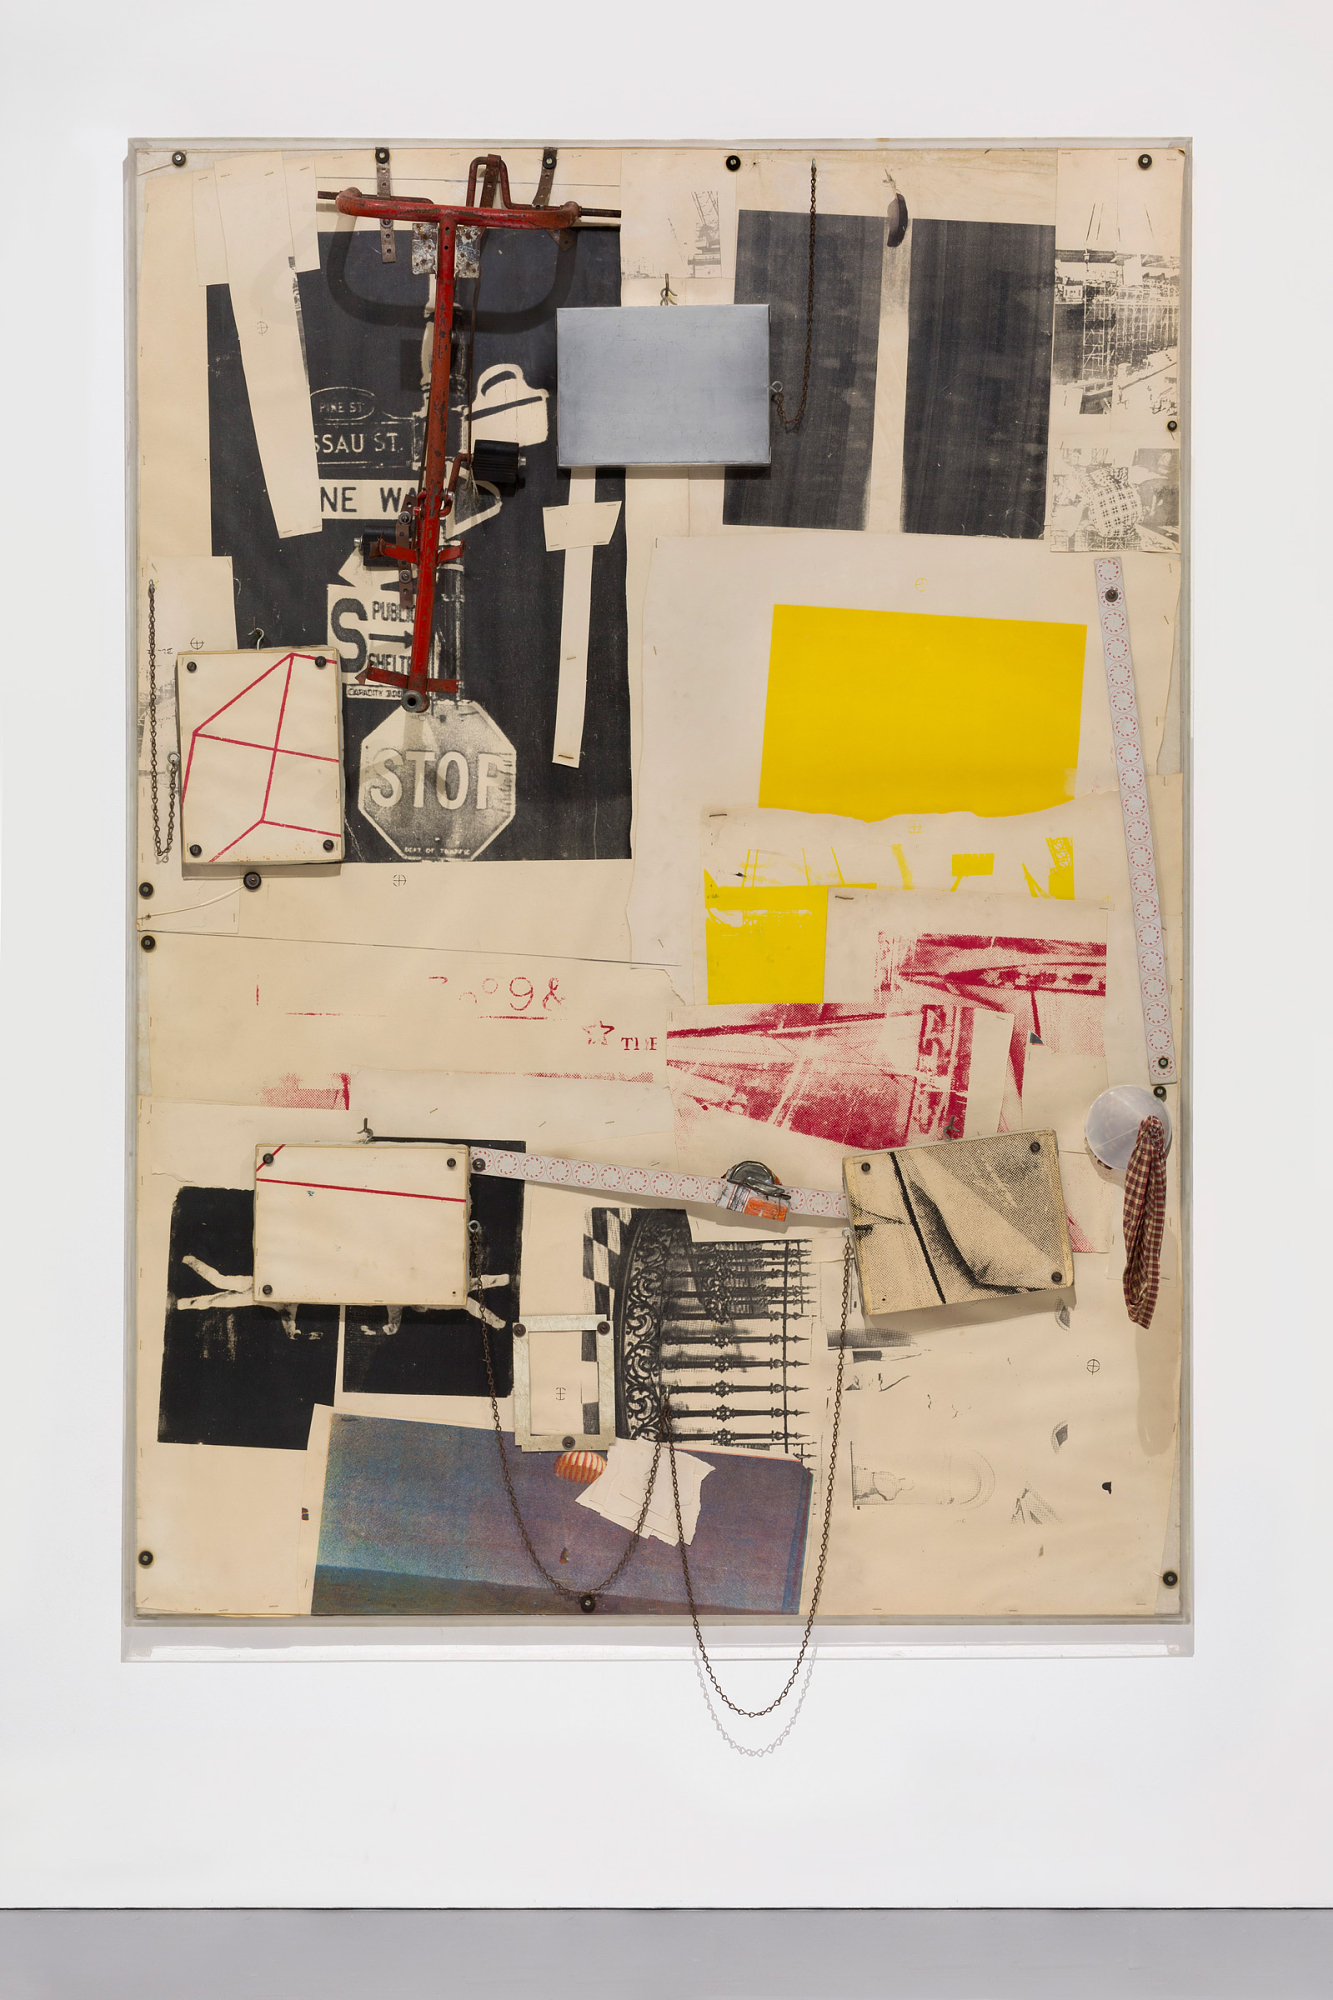 Fossil for Bob Morris, Robert Rauschenberg, 1965. Paper, metal, plastic, rubber, and fabric on canvas, 84 × 60 × 9 in. (213.4 × 152.4 × 22.9 cm)